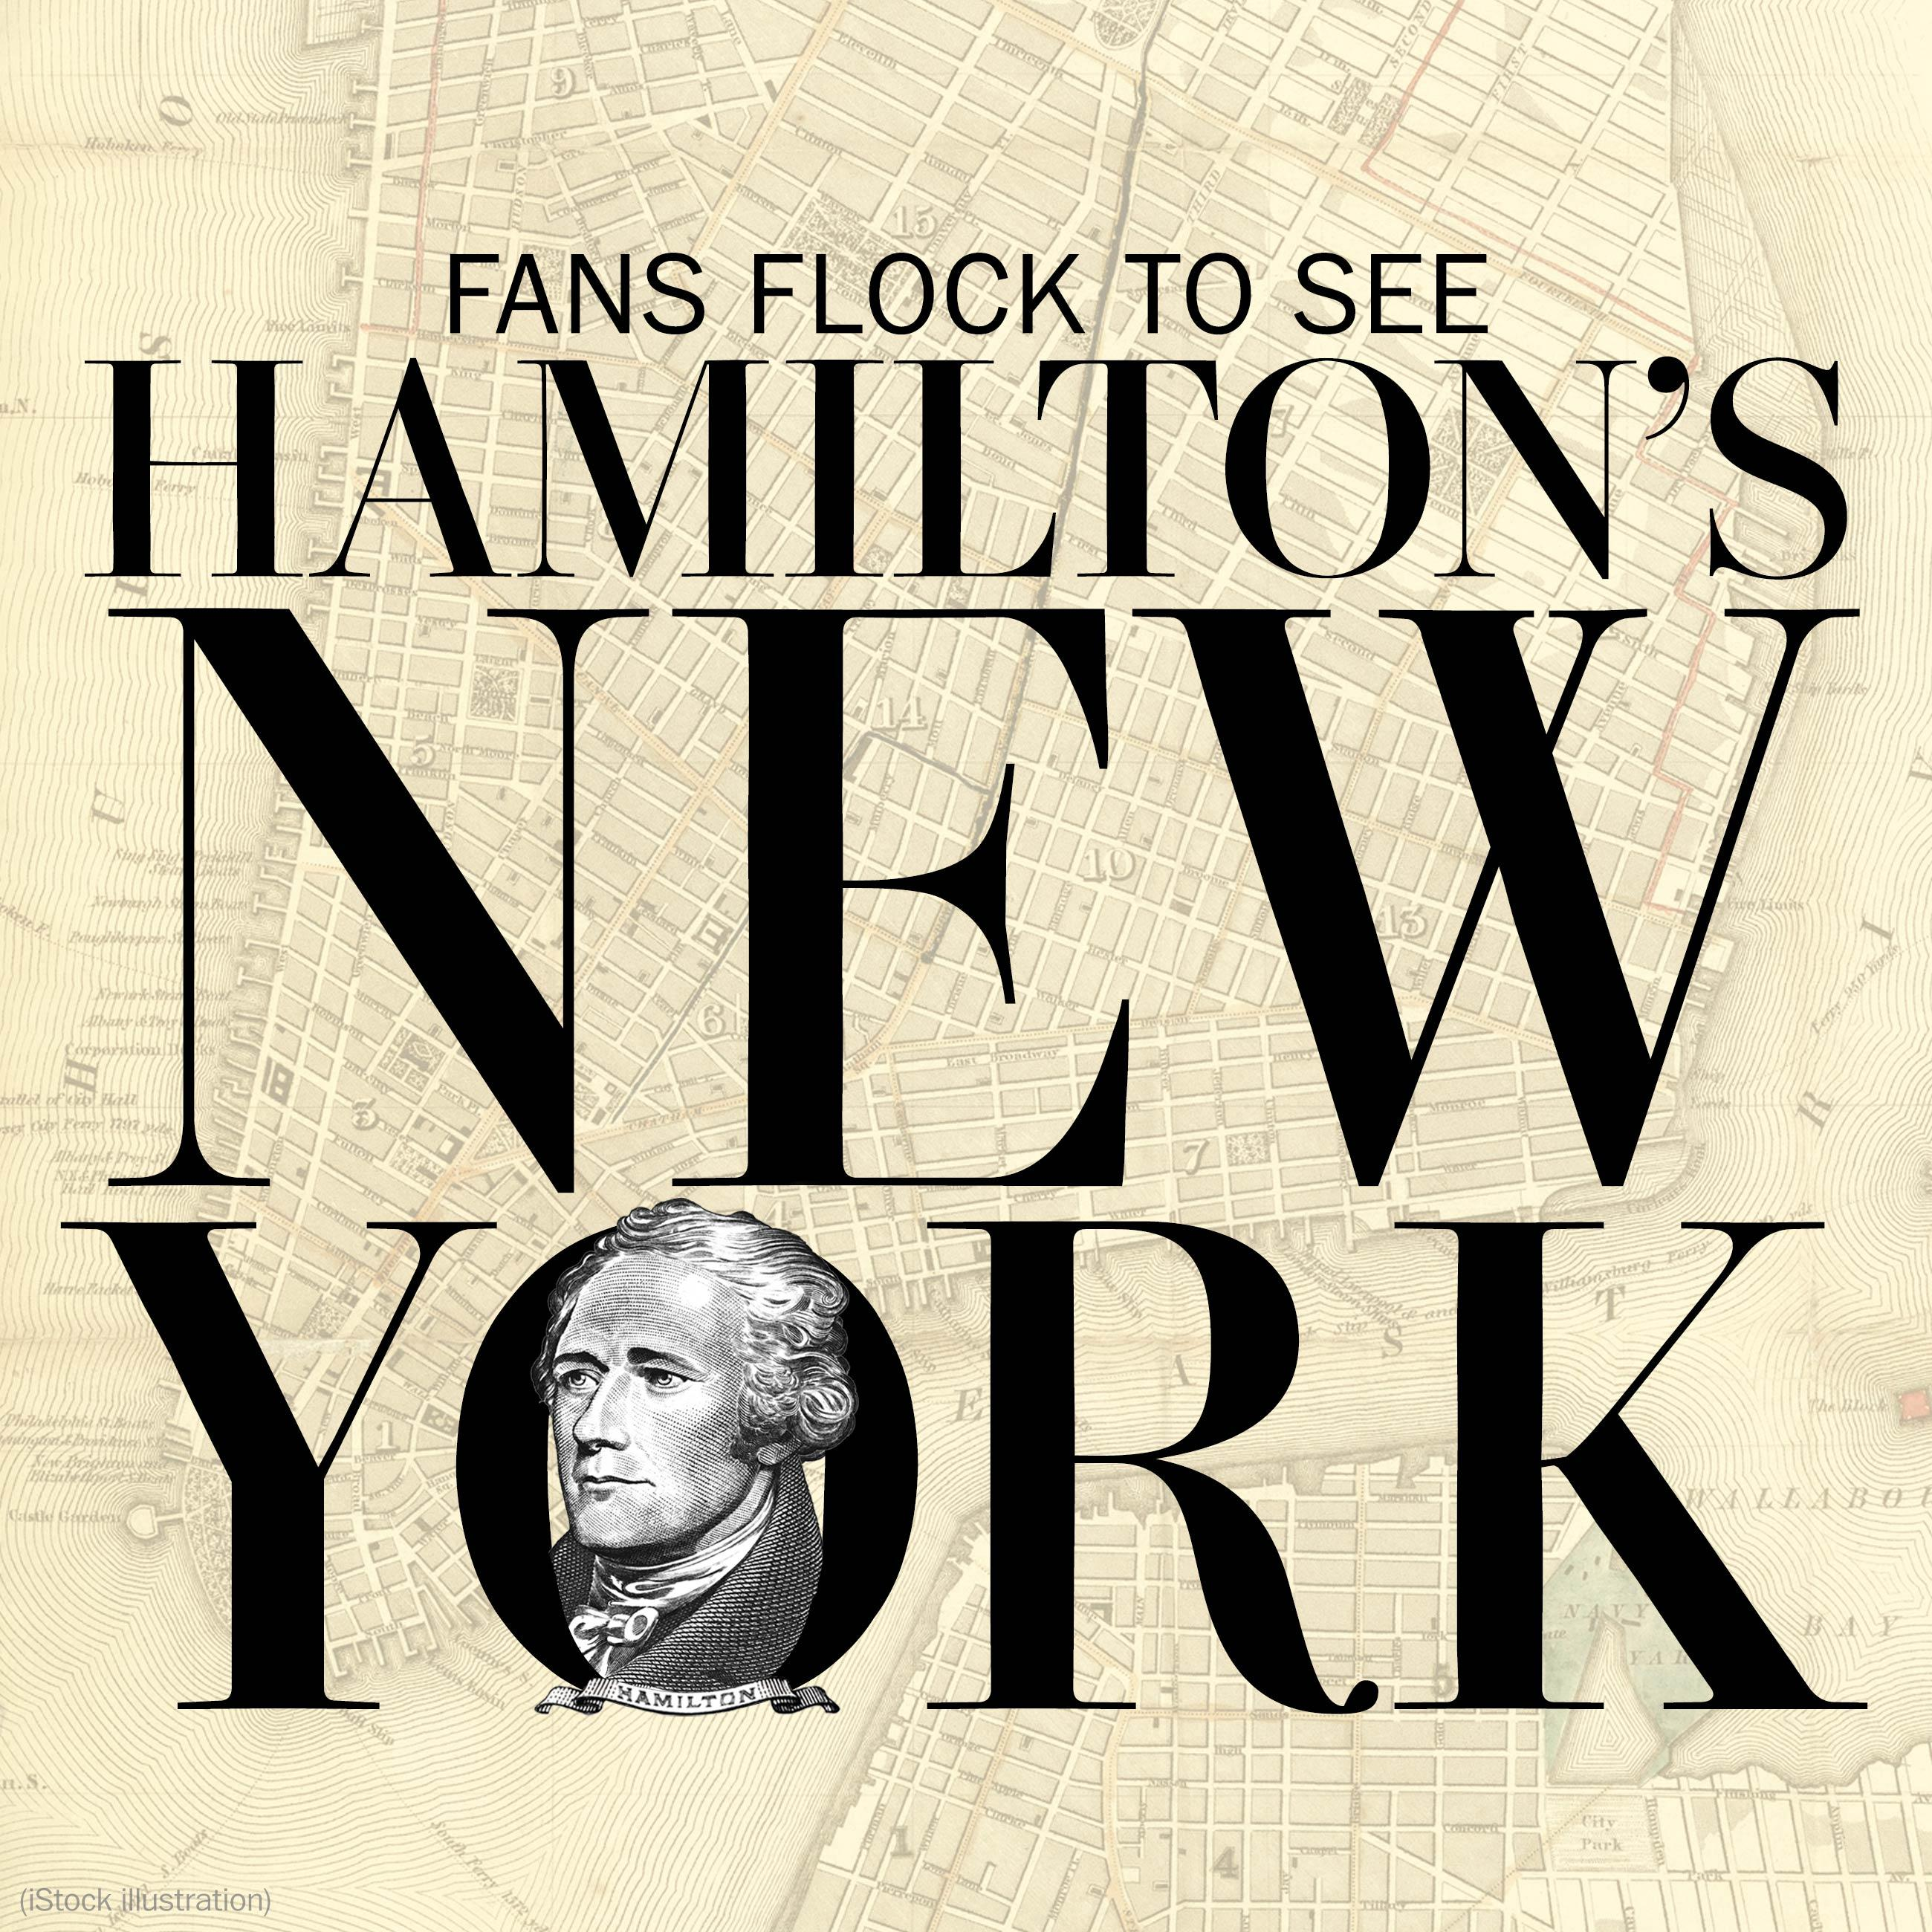 From his gravesite to where he met his end, fans are flocking to Hamilton's New York